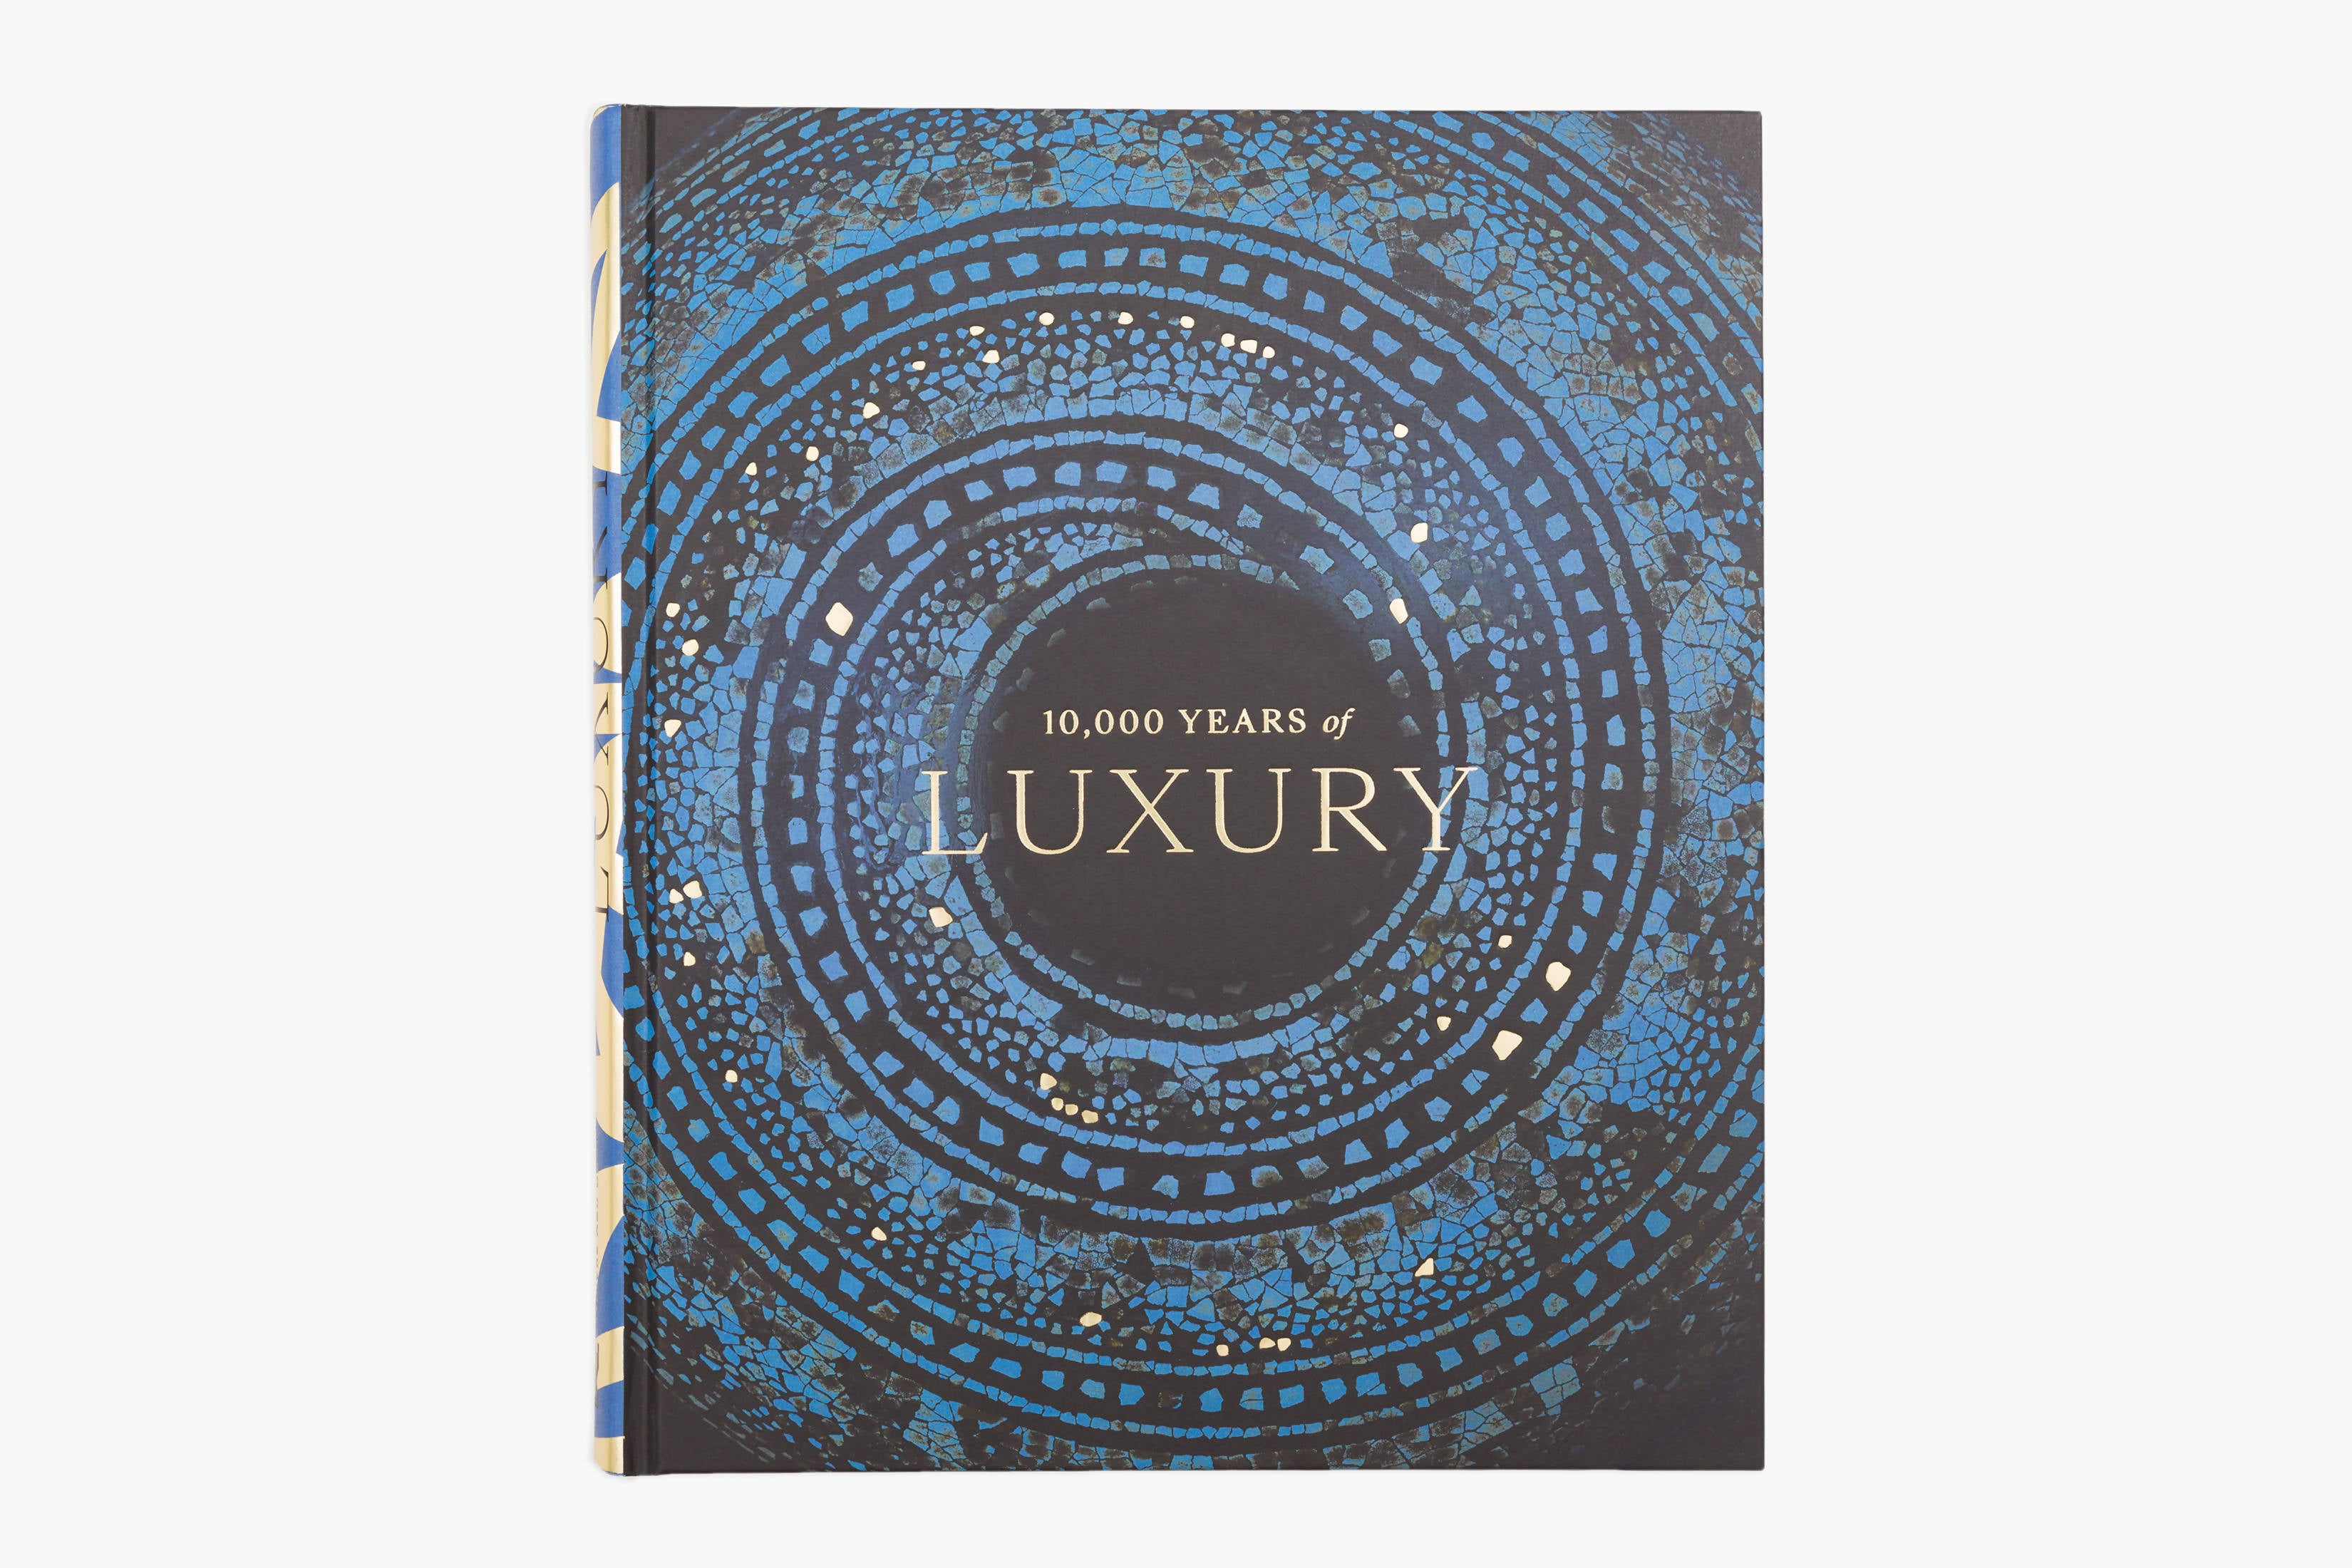 10,000 Years of Luxury